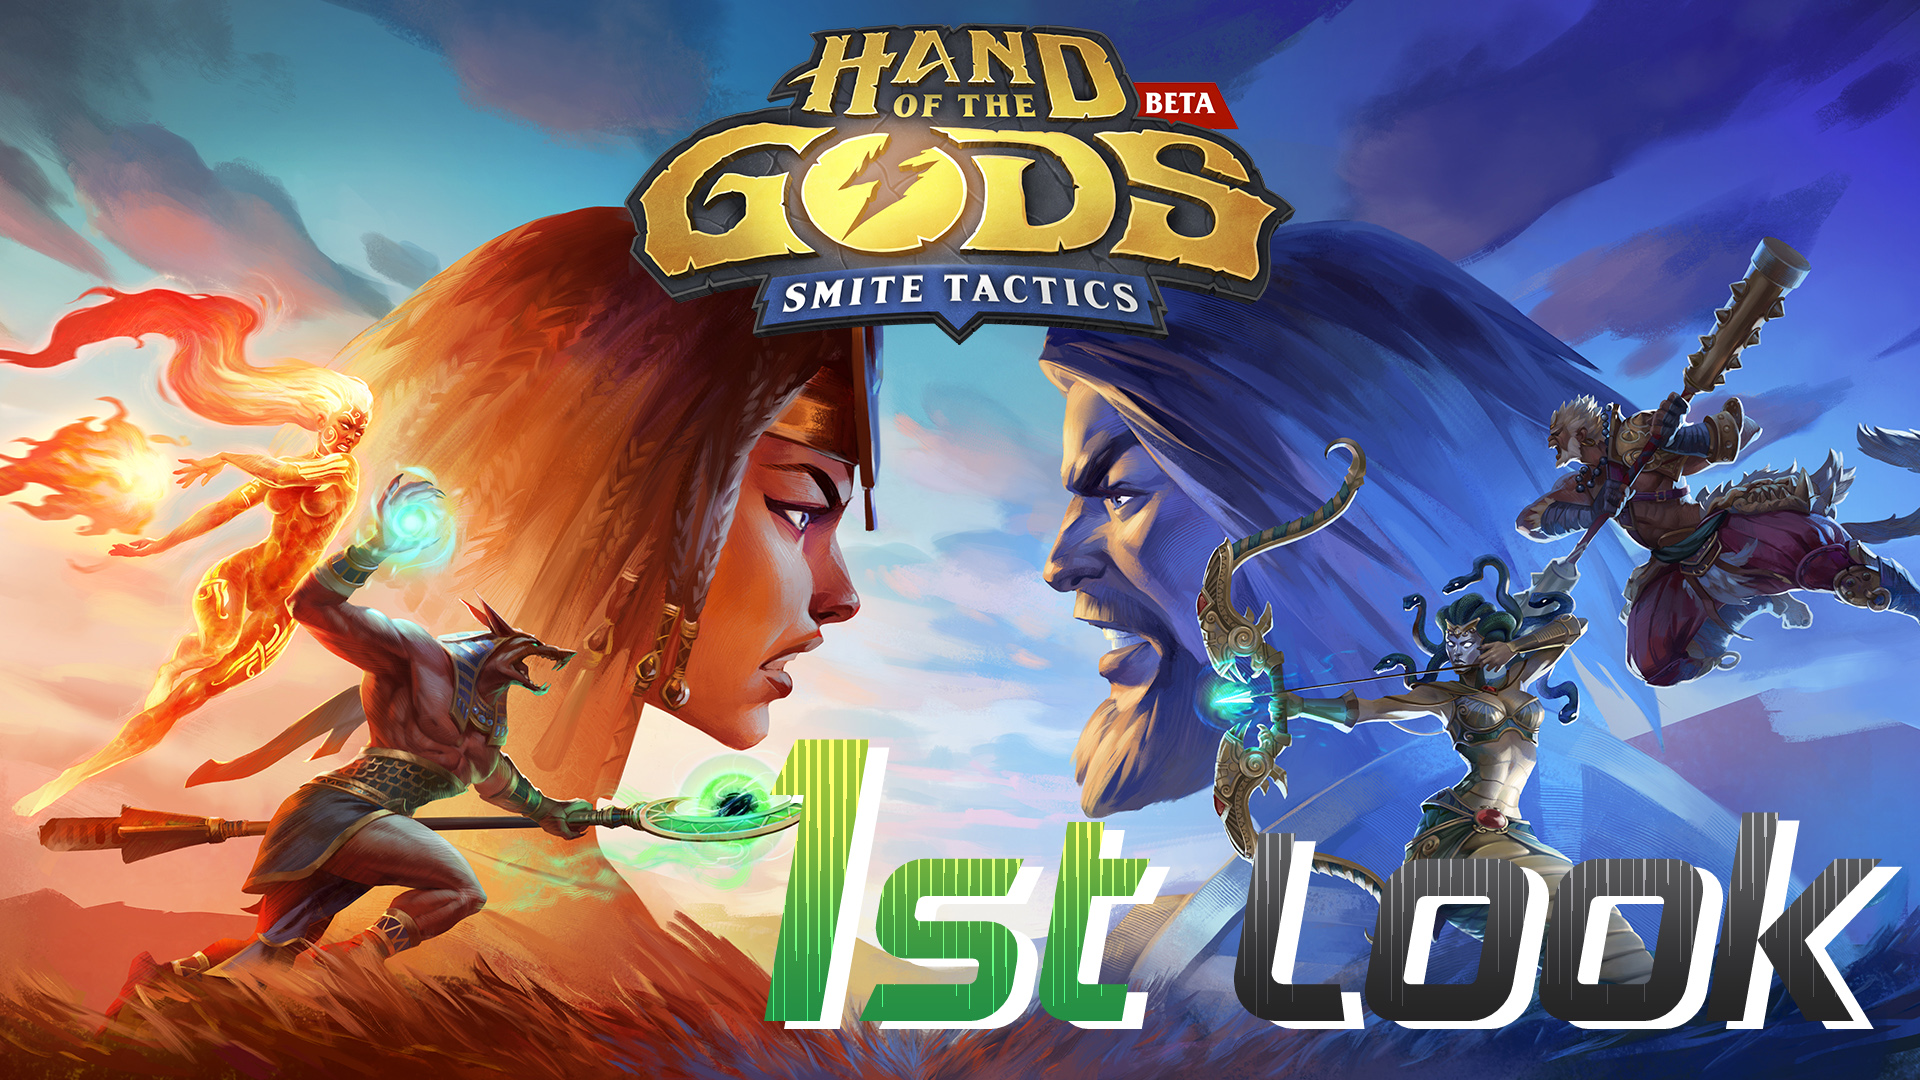 Hand of the Gods - First Look